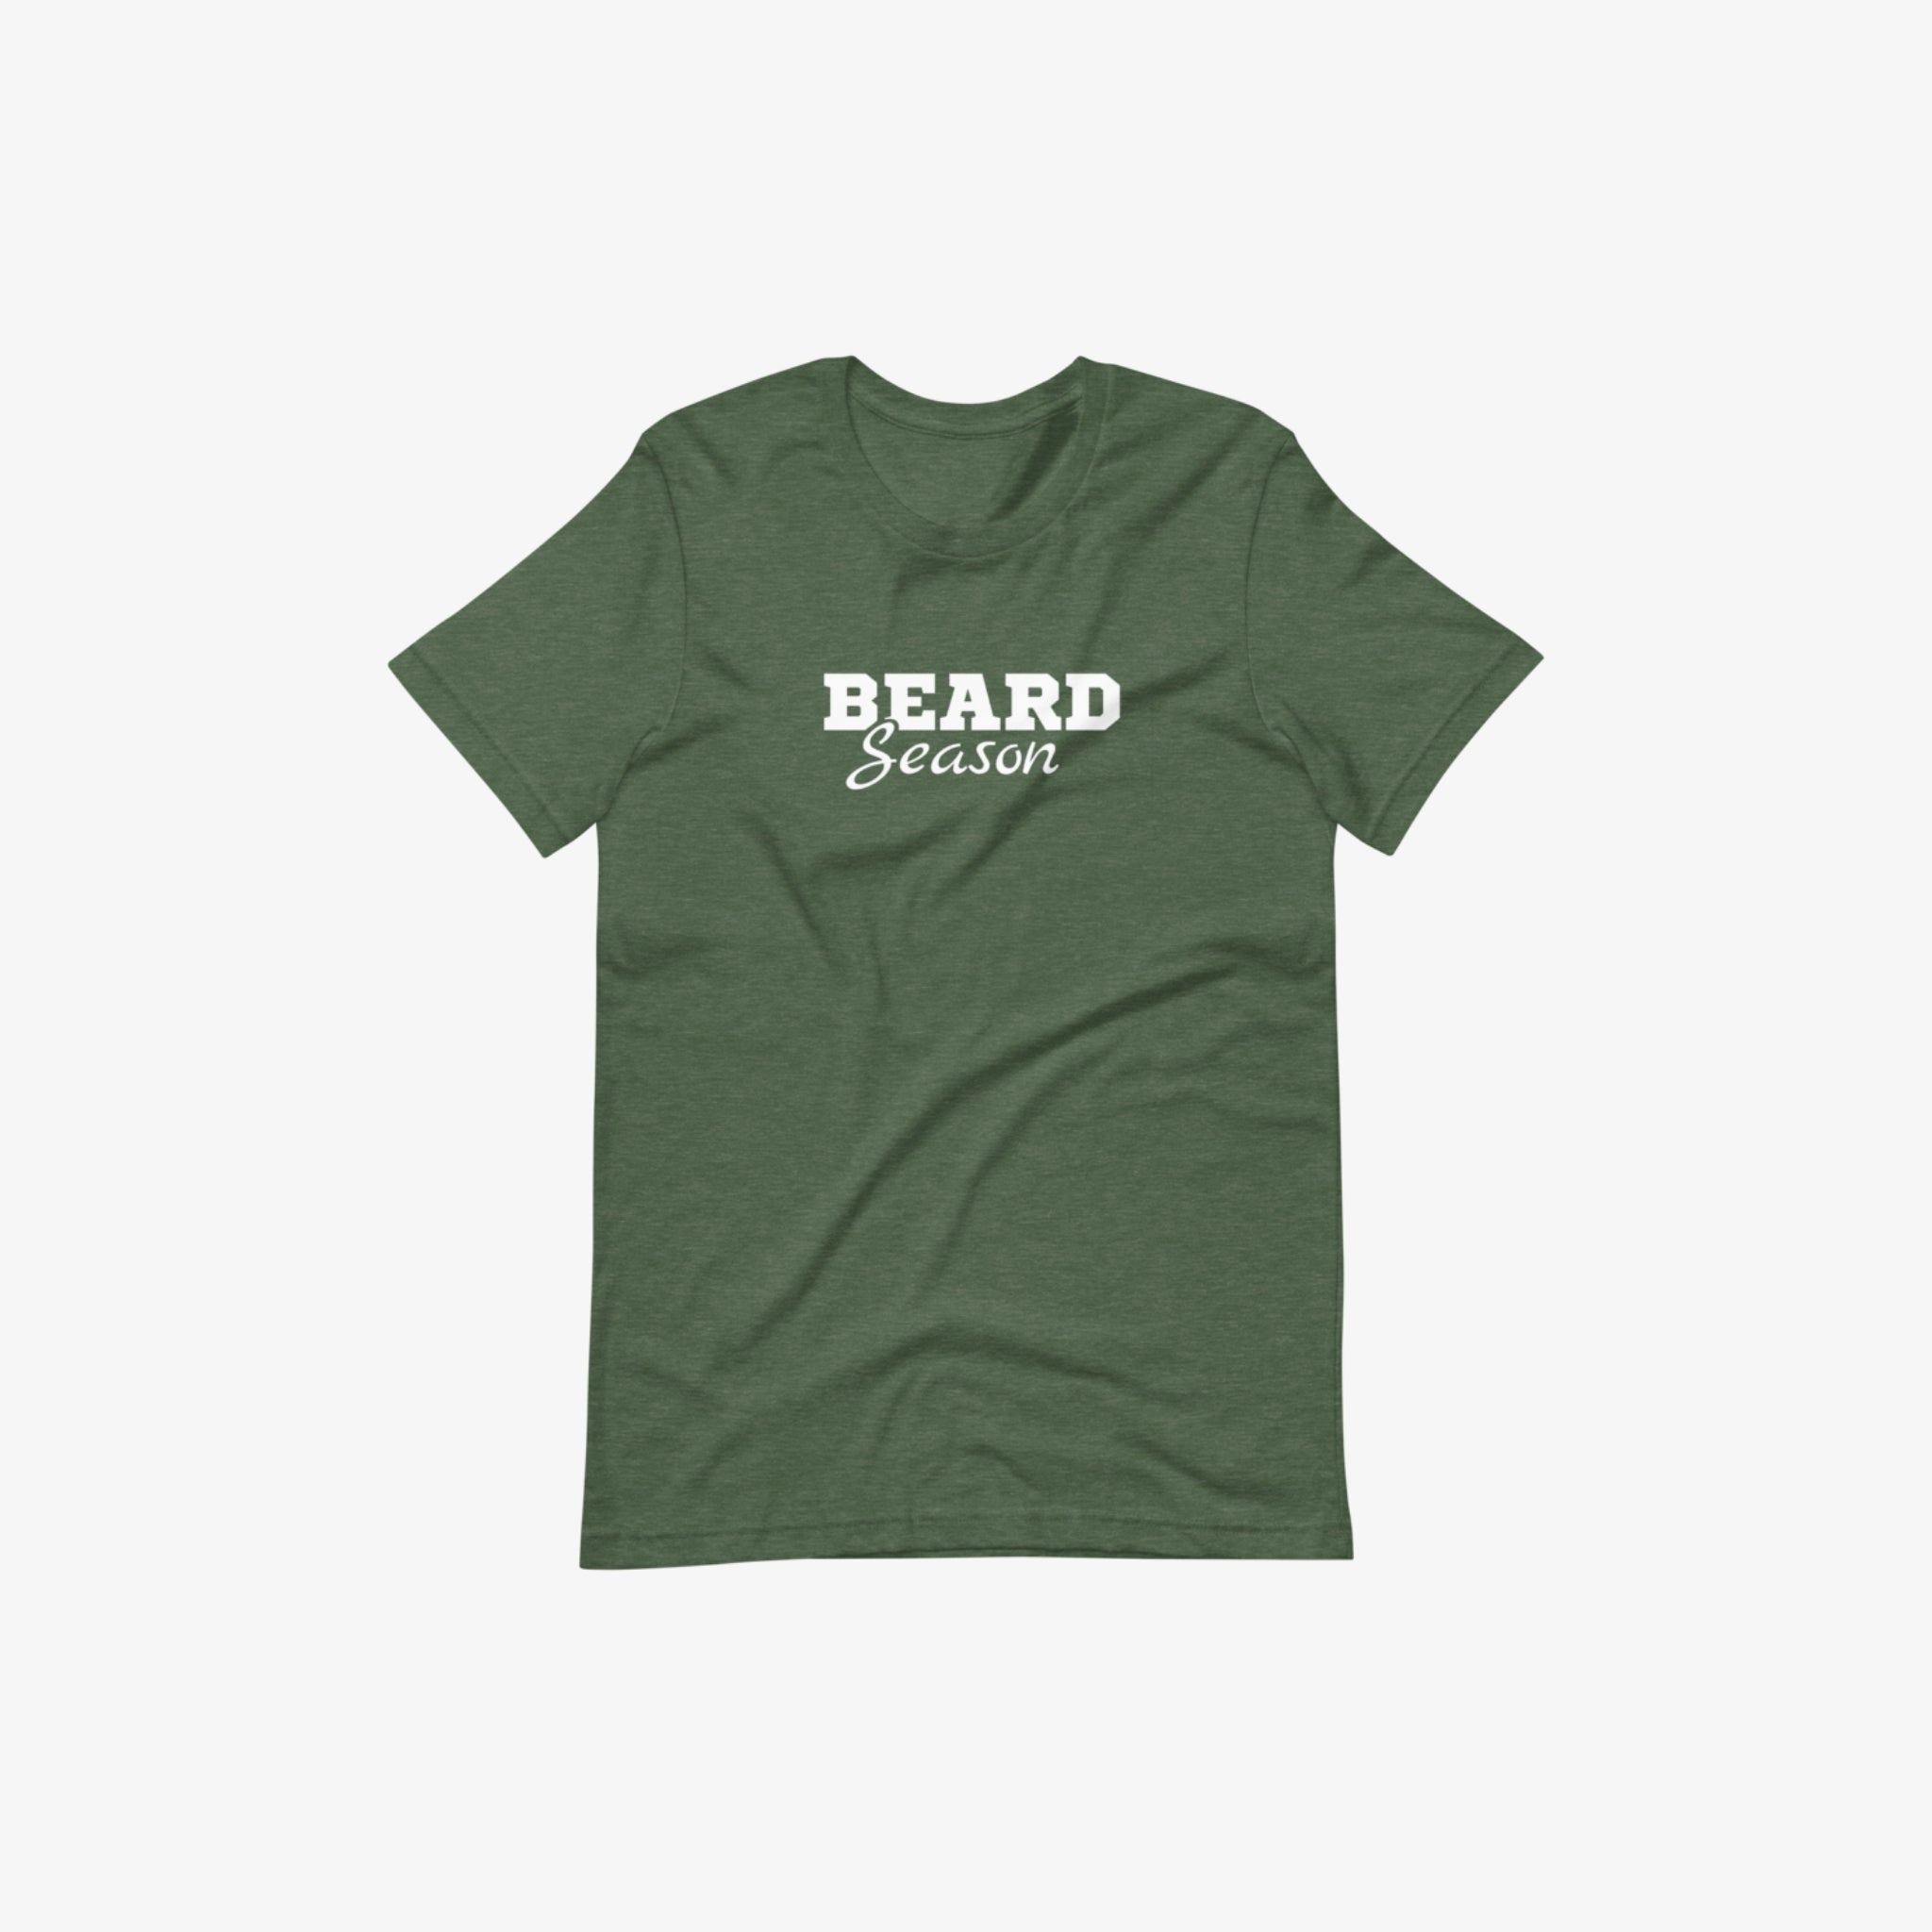 Honor's green beard season short sleeve t-shirt with a white background